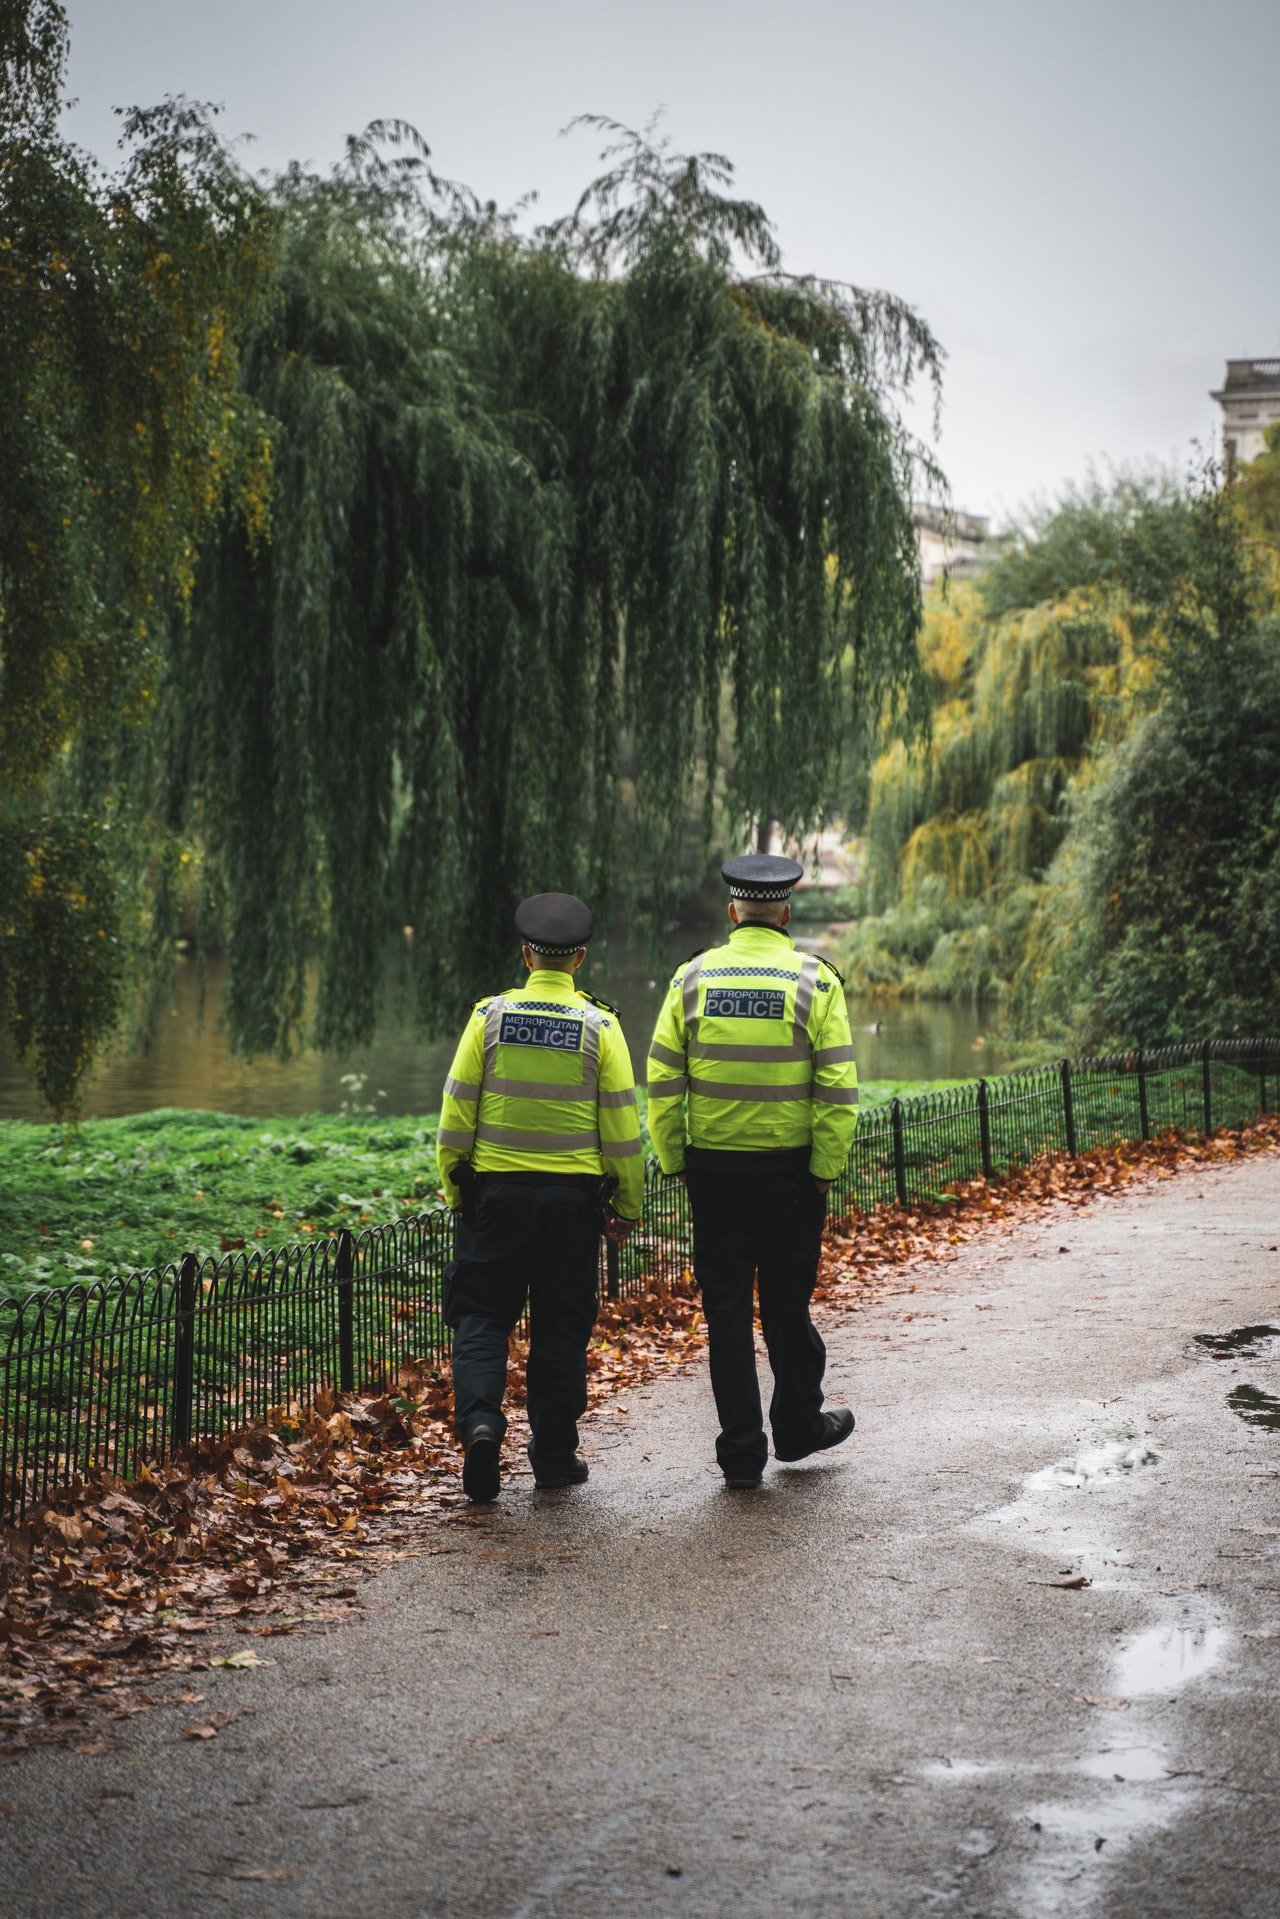 Two police offficers walking down the road   Photo: Pexels